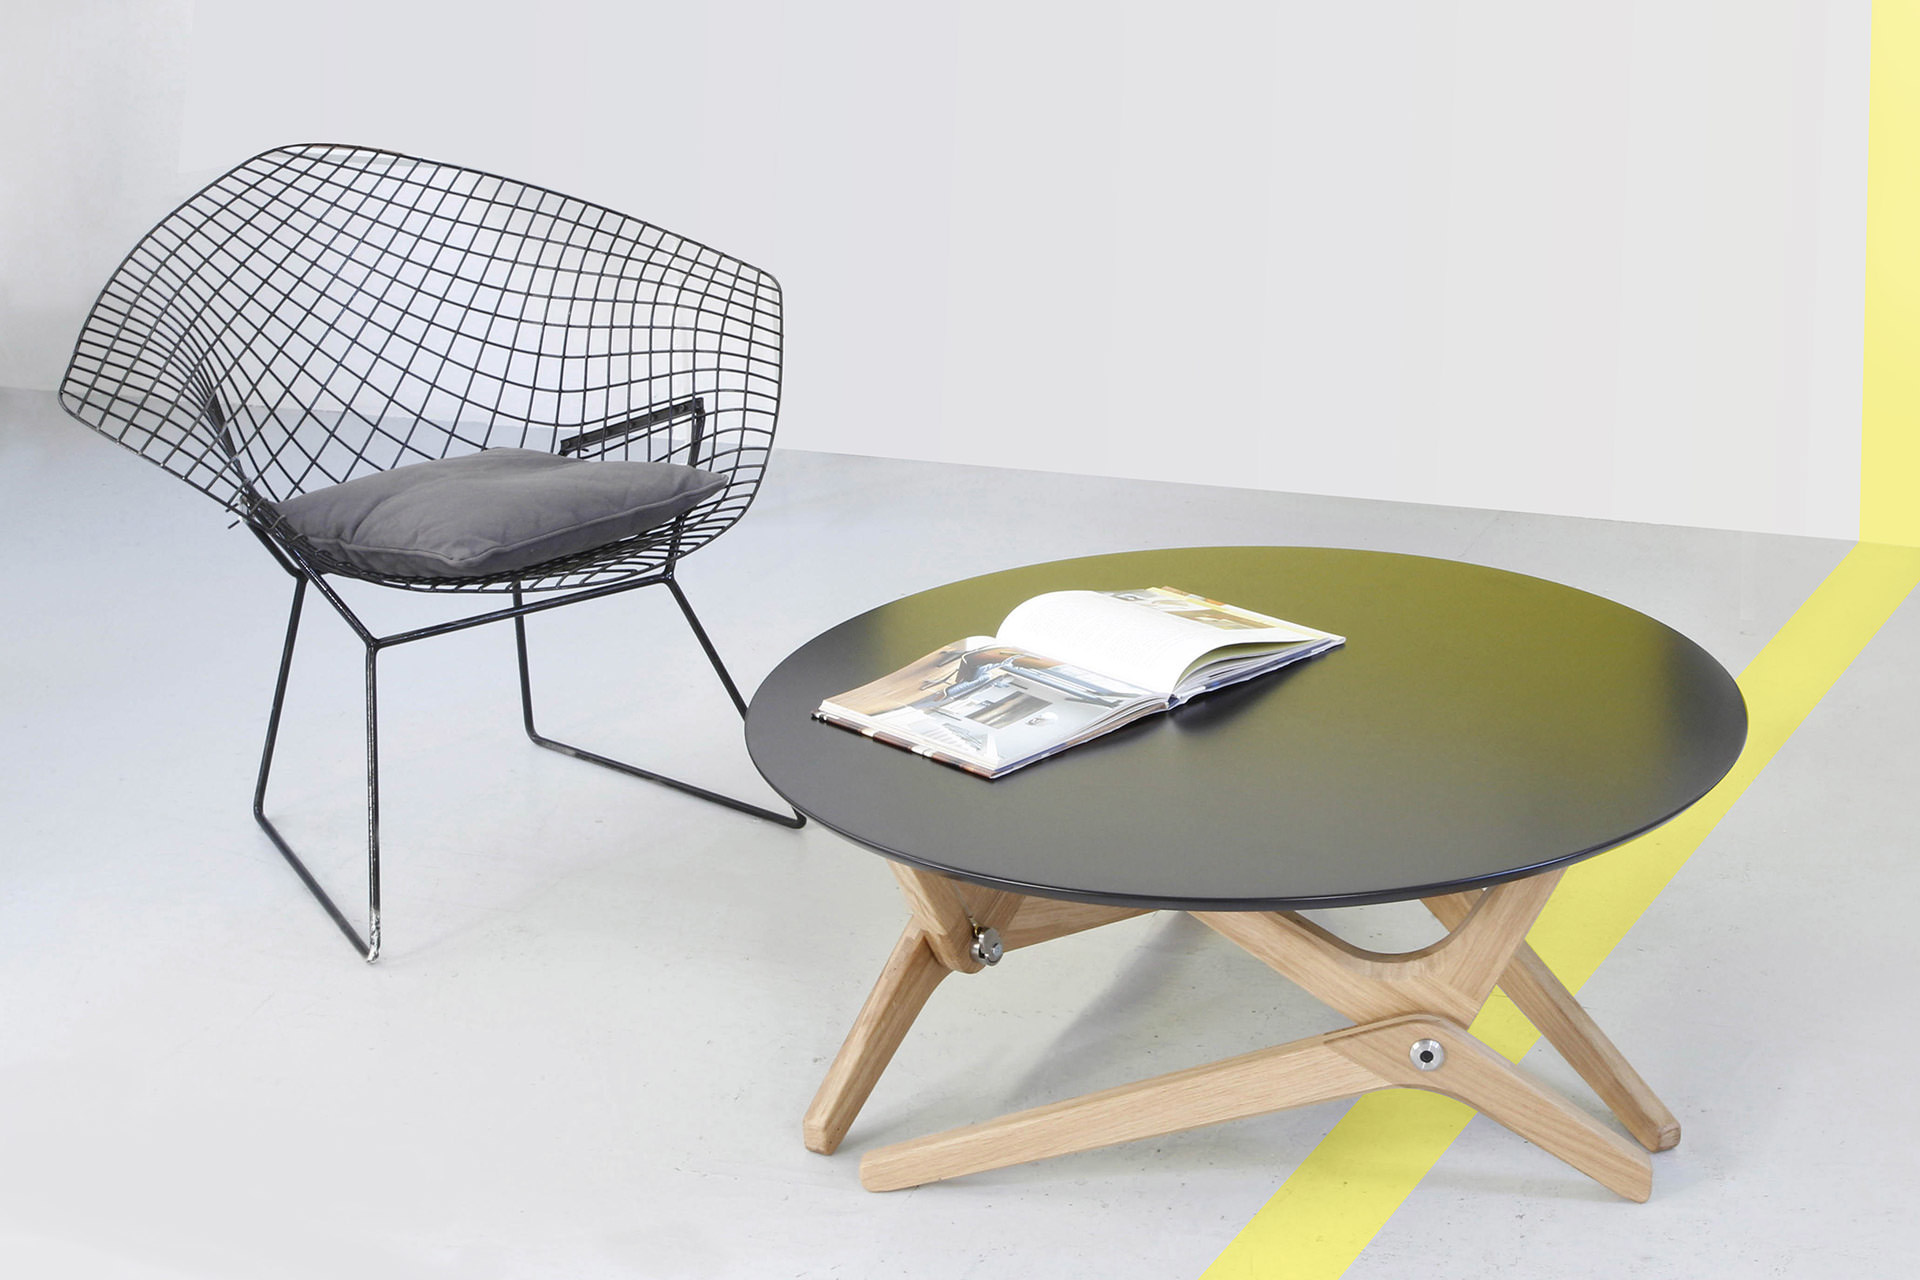 Archimède: From Couch to Dining Table In Just One Move